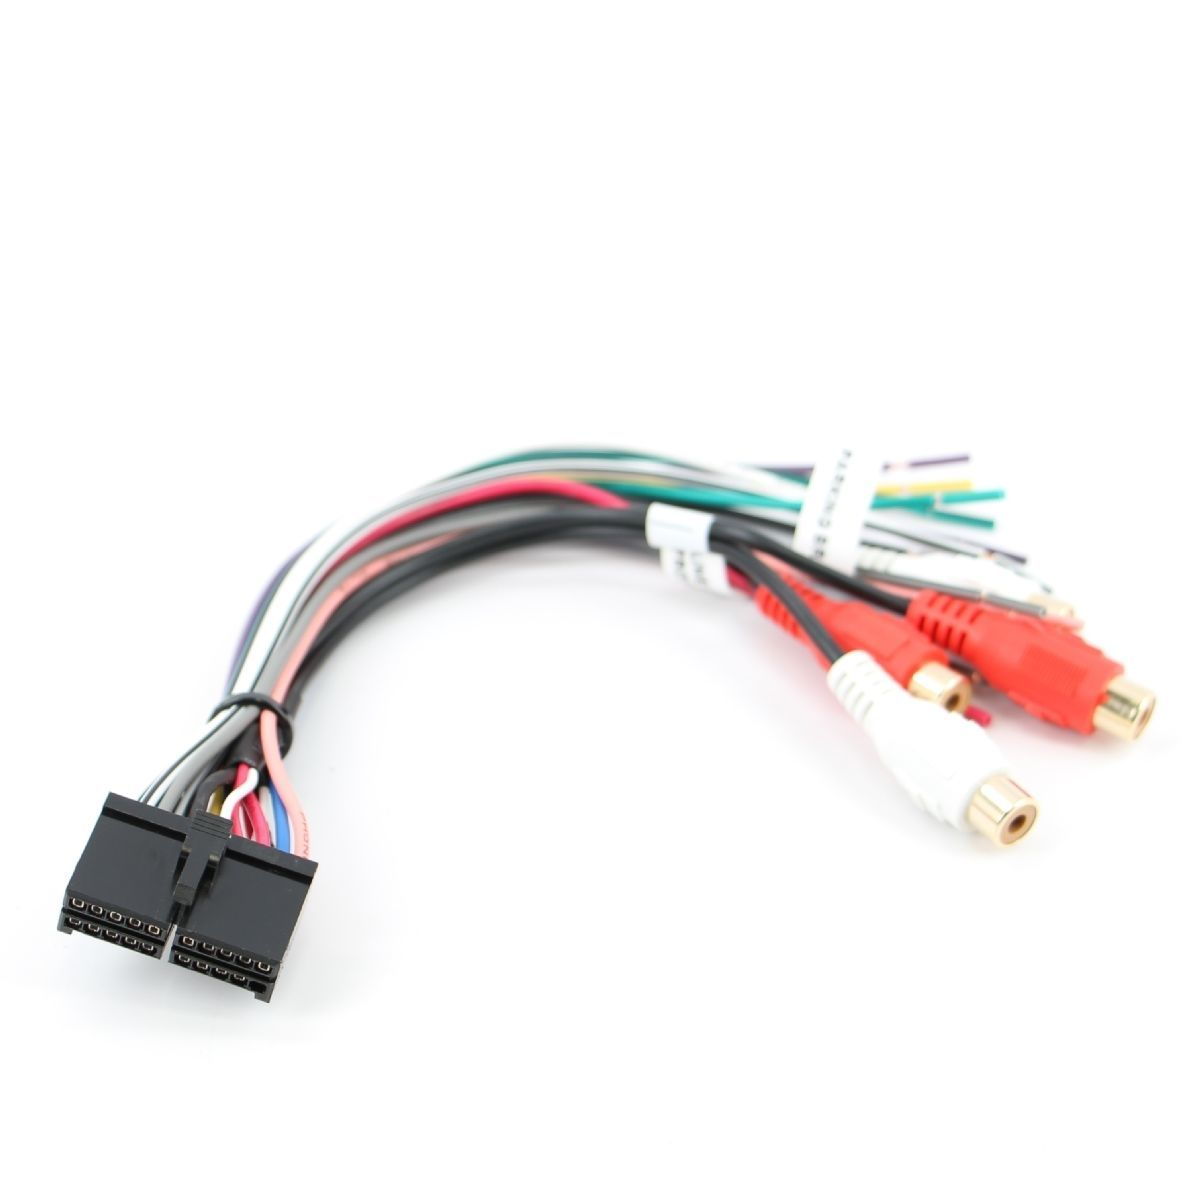 New 16 Pin AUTO STEREO WIRE HARNESS PLUG for PYLE PLDN750D Player